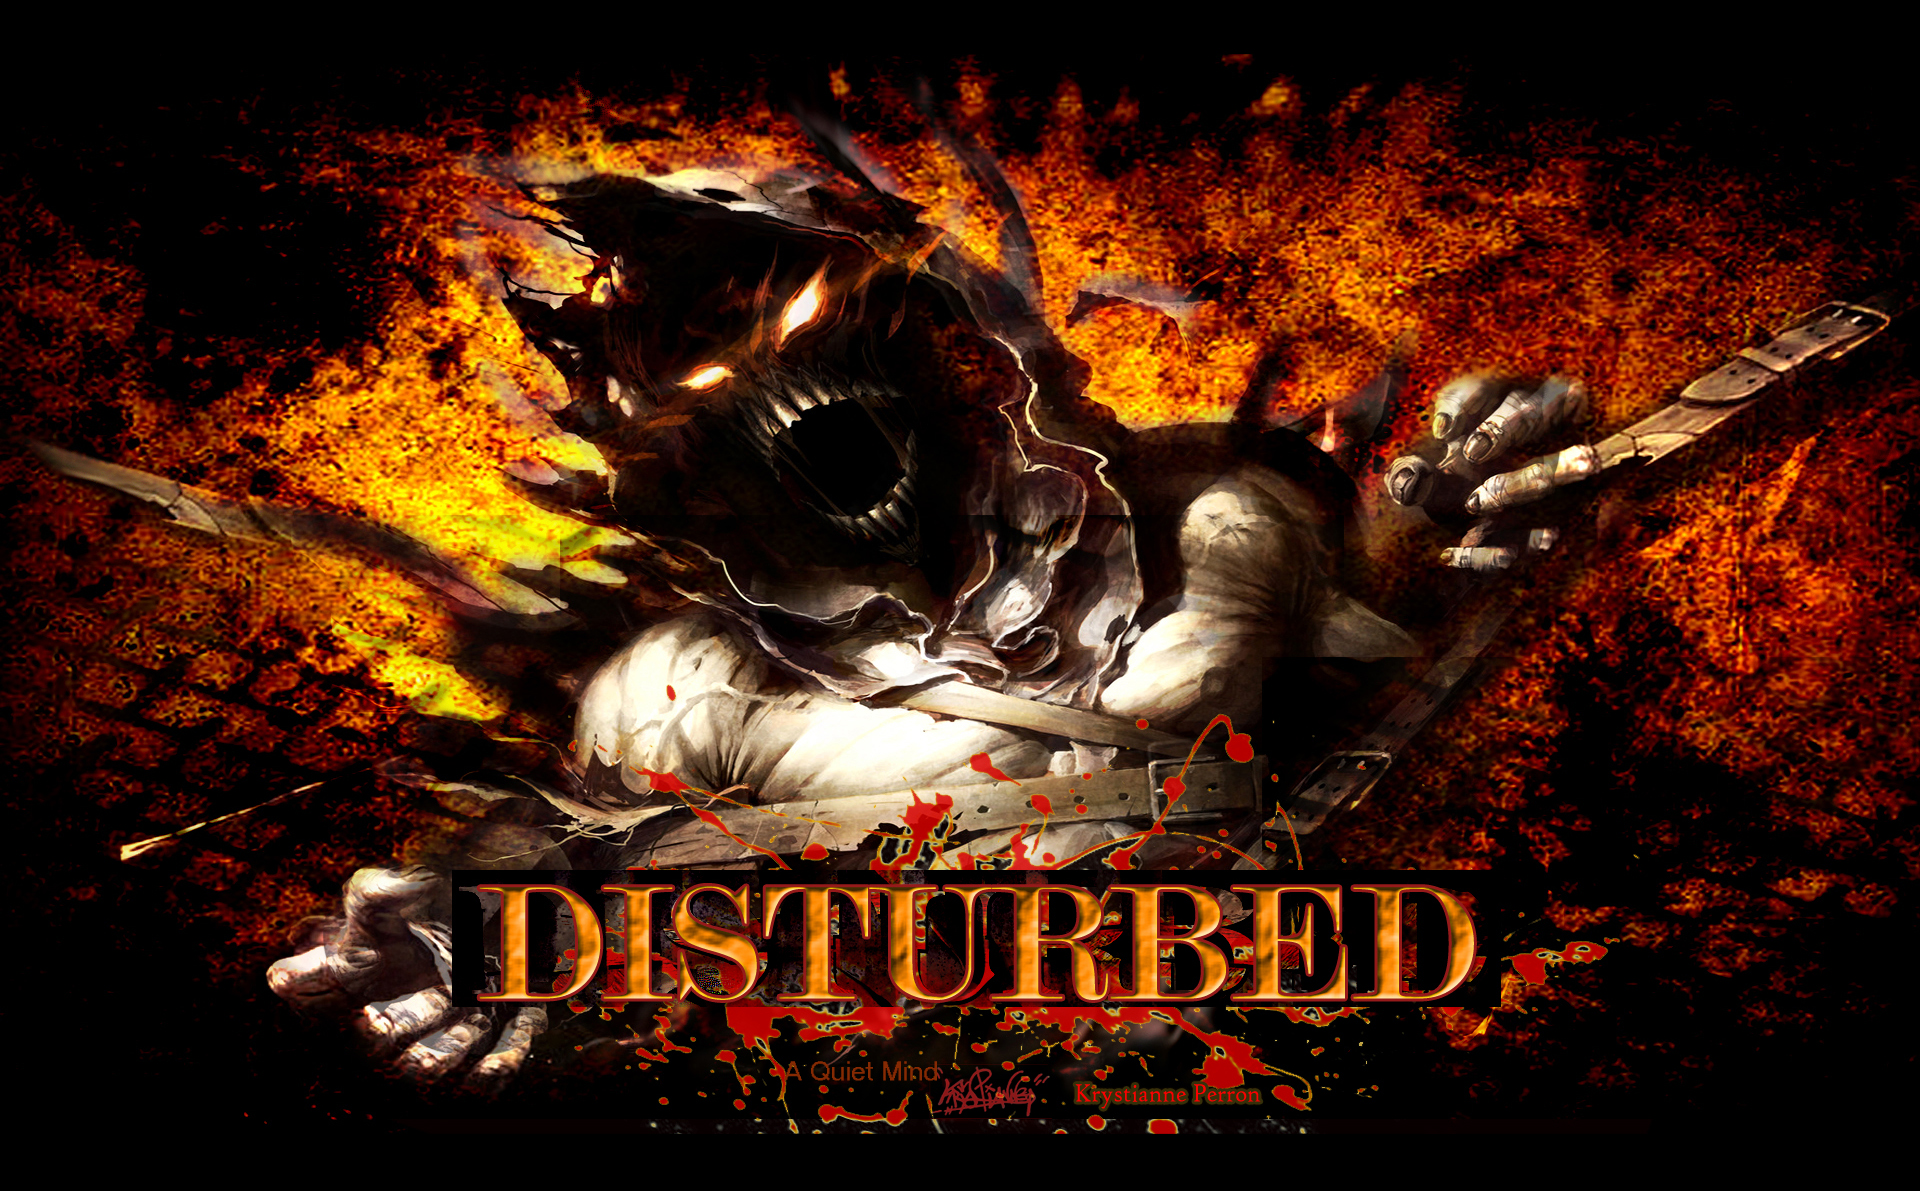 Fall Out Boy Wallpaper Desktop Disturbed Hd Wallpapers